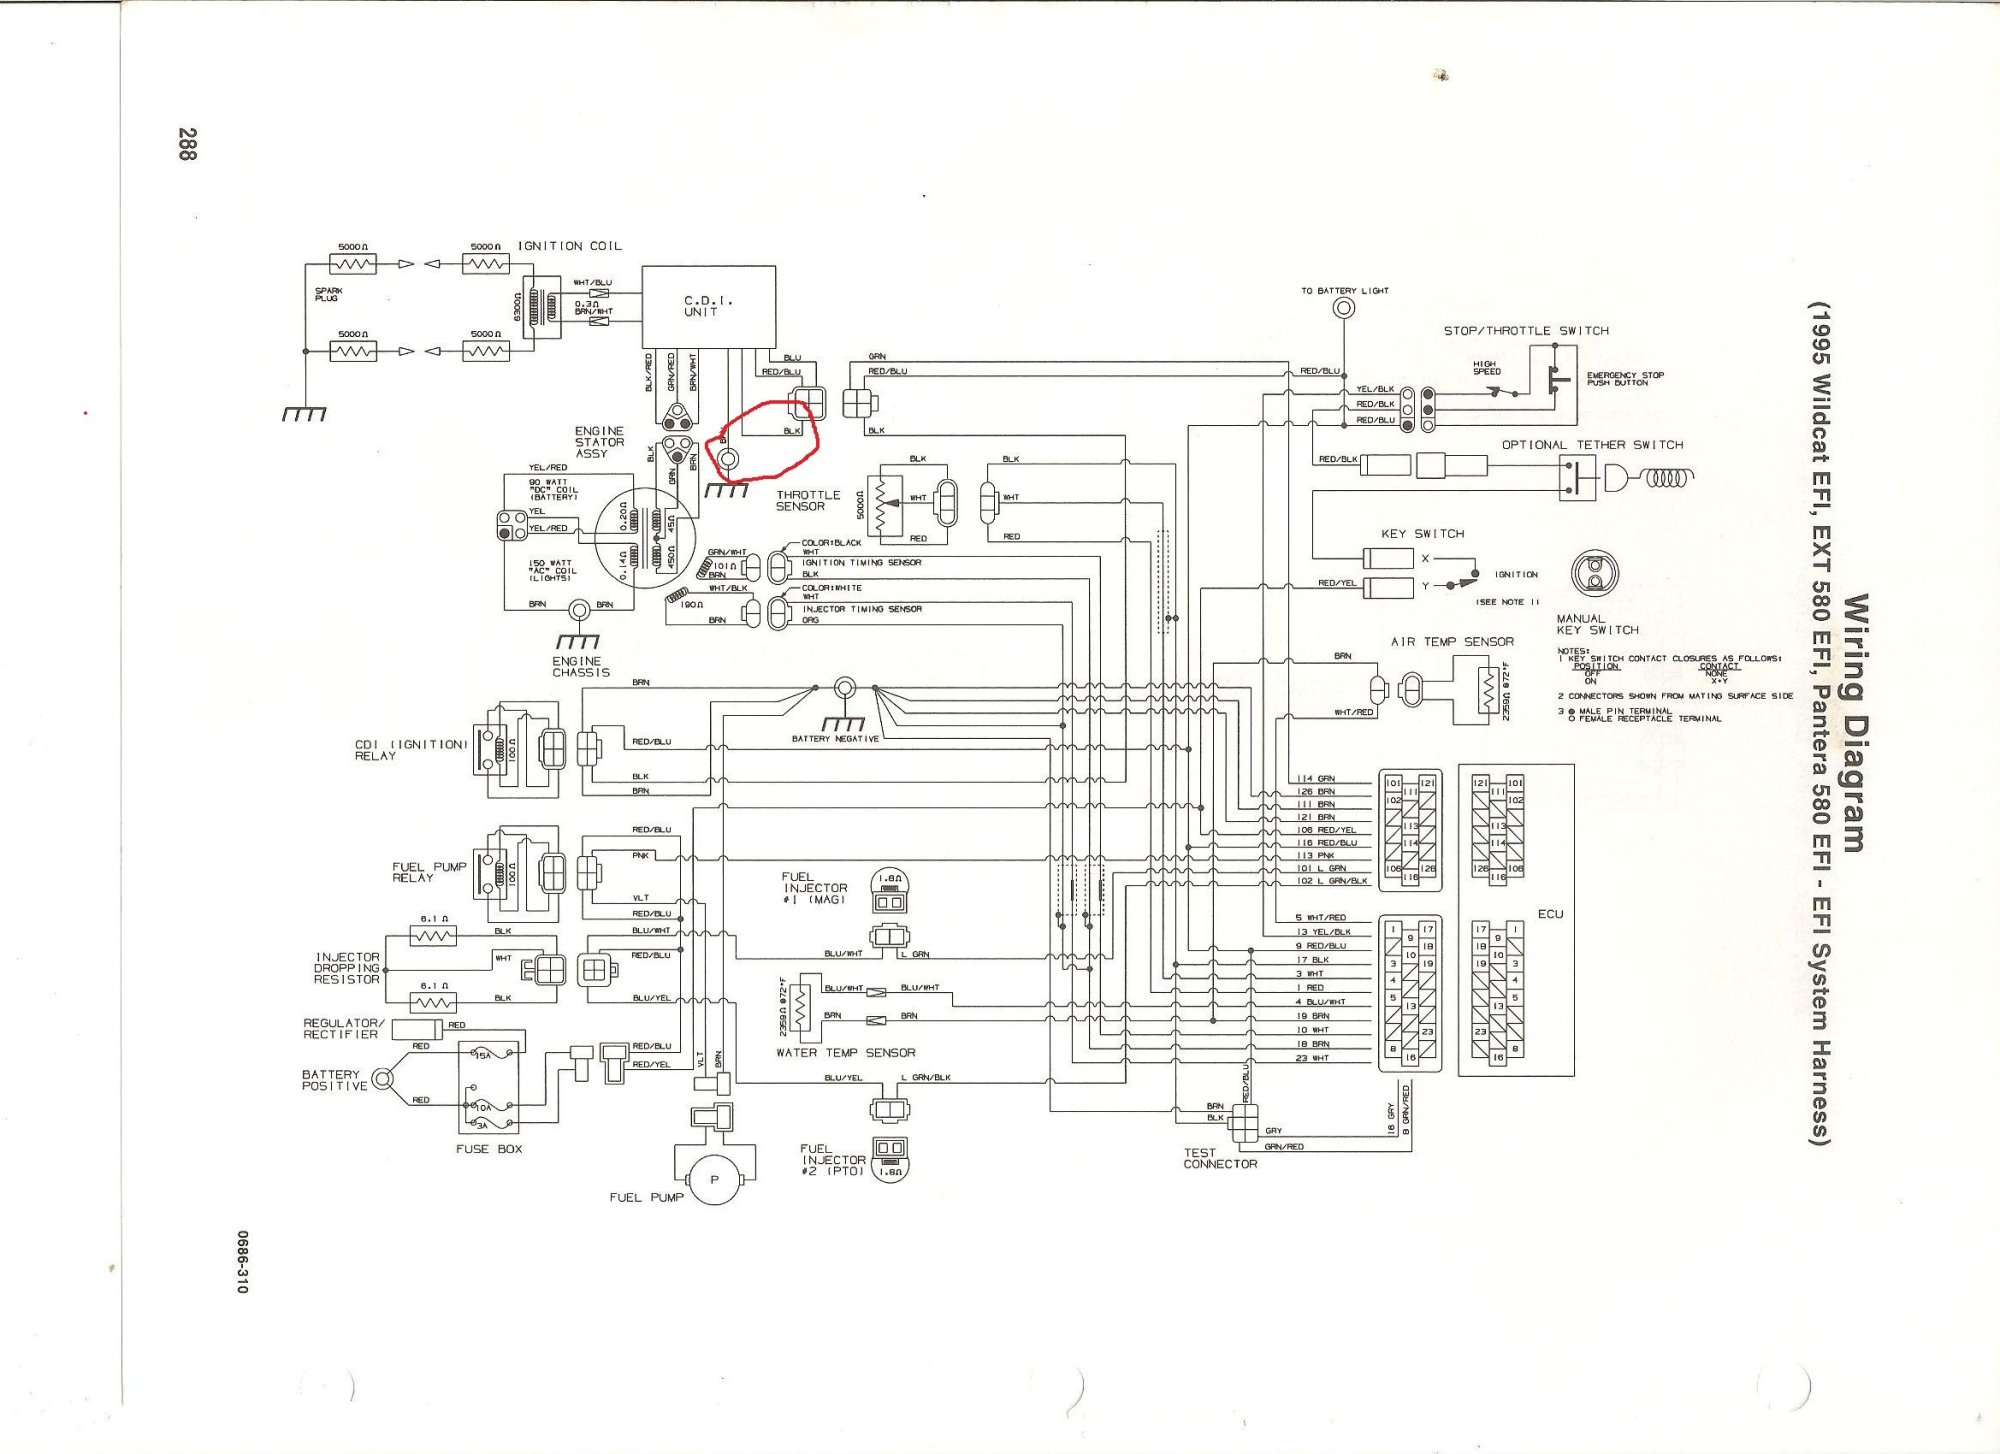 hight resolution of 1993 arctic wildcat wiring diagram wiring diagrams terms 93 wildcat wiring diagram